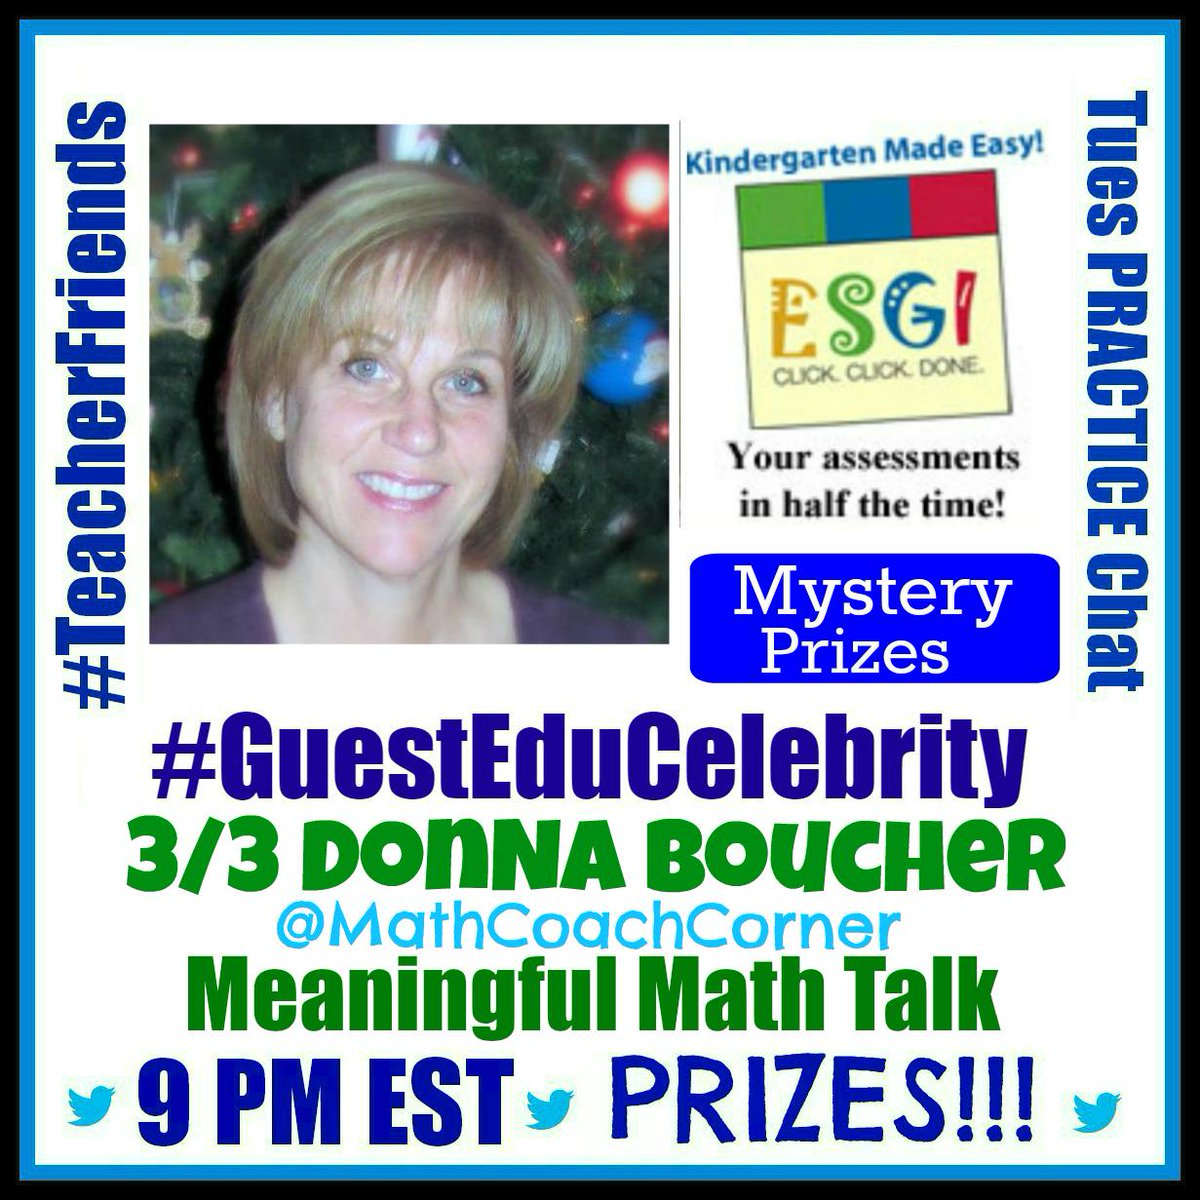 #TeacherFriends Next week we welcome Donna @MathCoachCorner as our guest! Share and invite! http://t.co/Mr4rcyr9IT